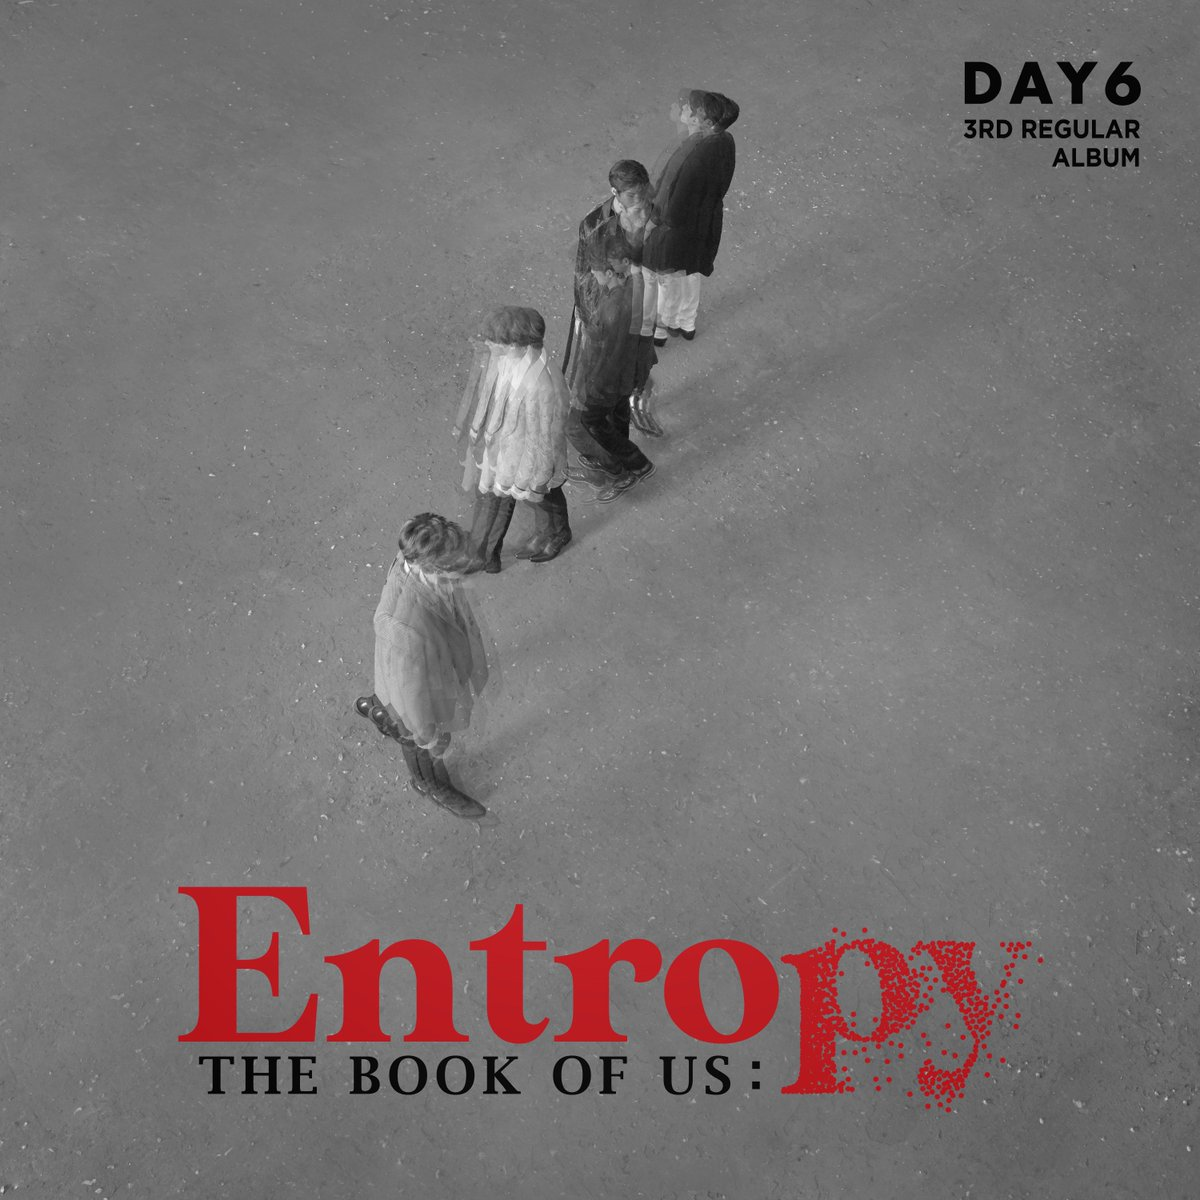 DAY6 <The Book of Us : Entropy> Listen on iTunes & Apple Music:   https:// apple.co/2MEHCMR      #DAY6  #데이식스  #The_Book_of_Us  #Entropy  #Sweet_Chaos <br>http://pic.twitter.com/kuYJm6T9nG